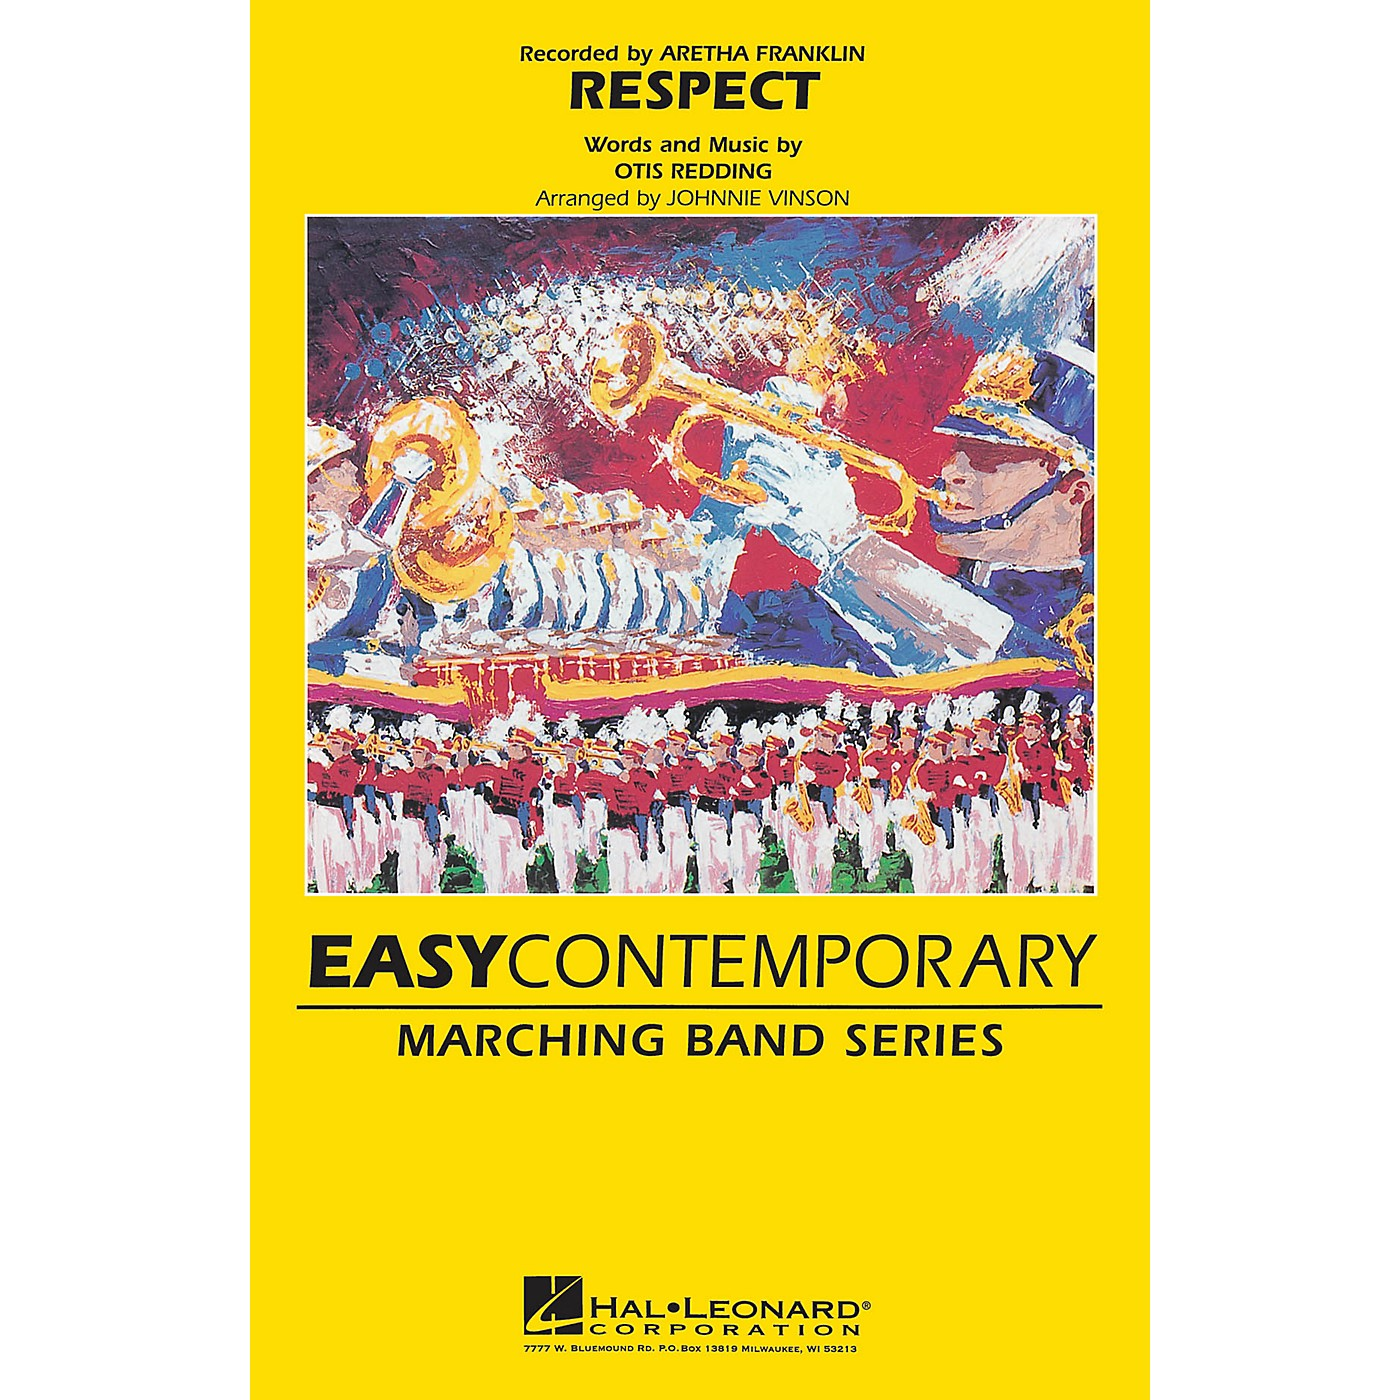 Hal Leonard Respect Marching Band Level 2-3 by Aretha Franklin Arranged by Johnnie Vinson thumbnail